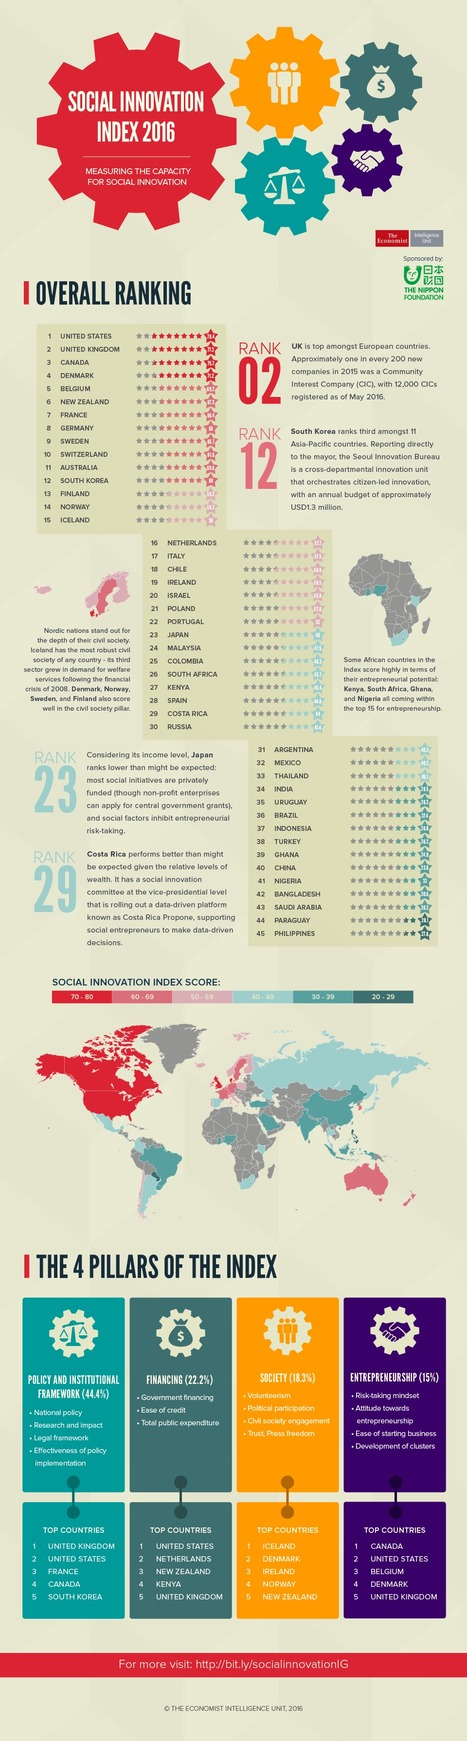 Social Innovation Index 2016 #Infographic | Management - Innovation -Technology and beyond | Scoop.it